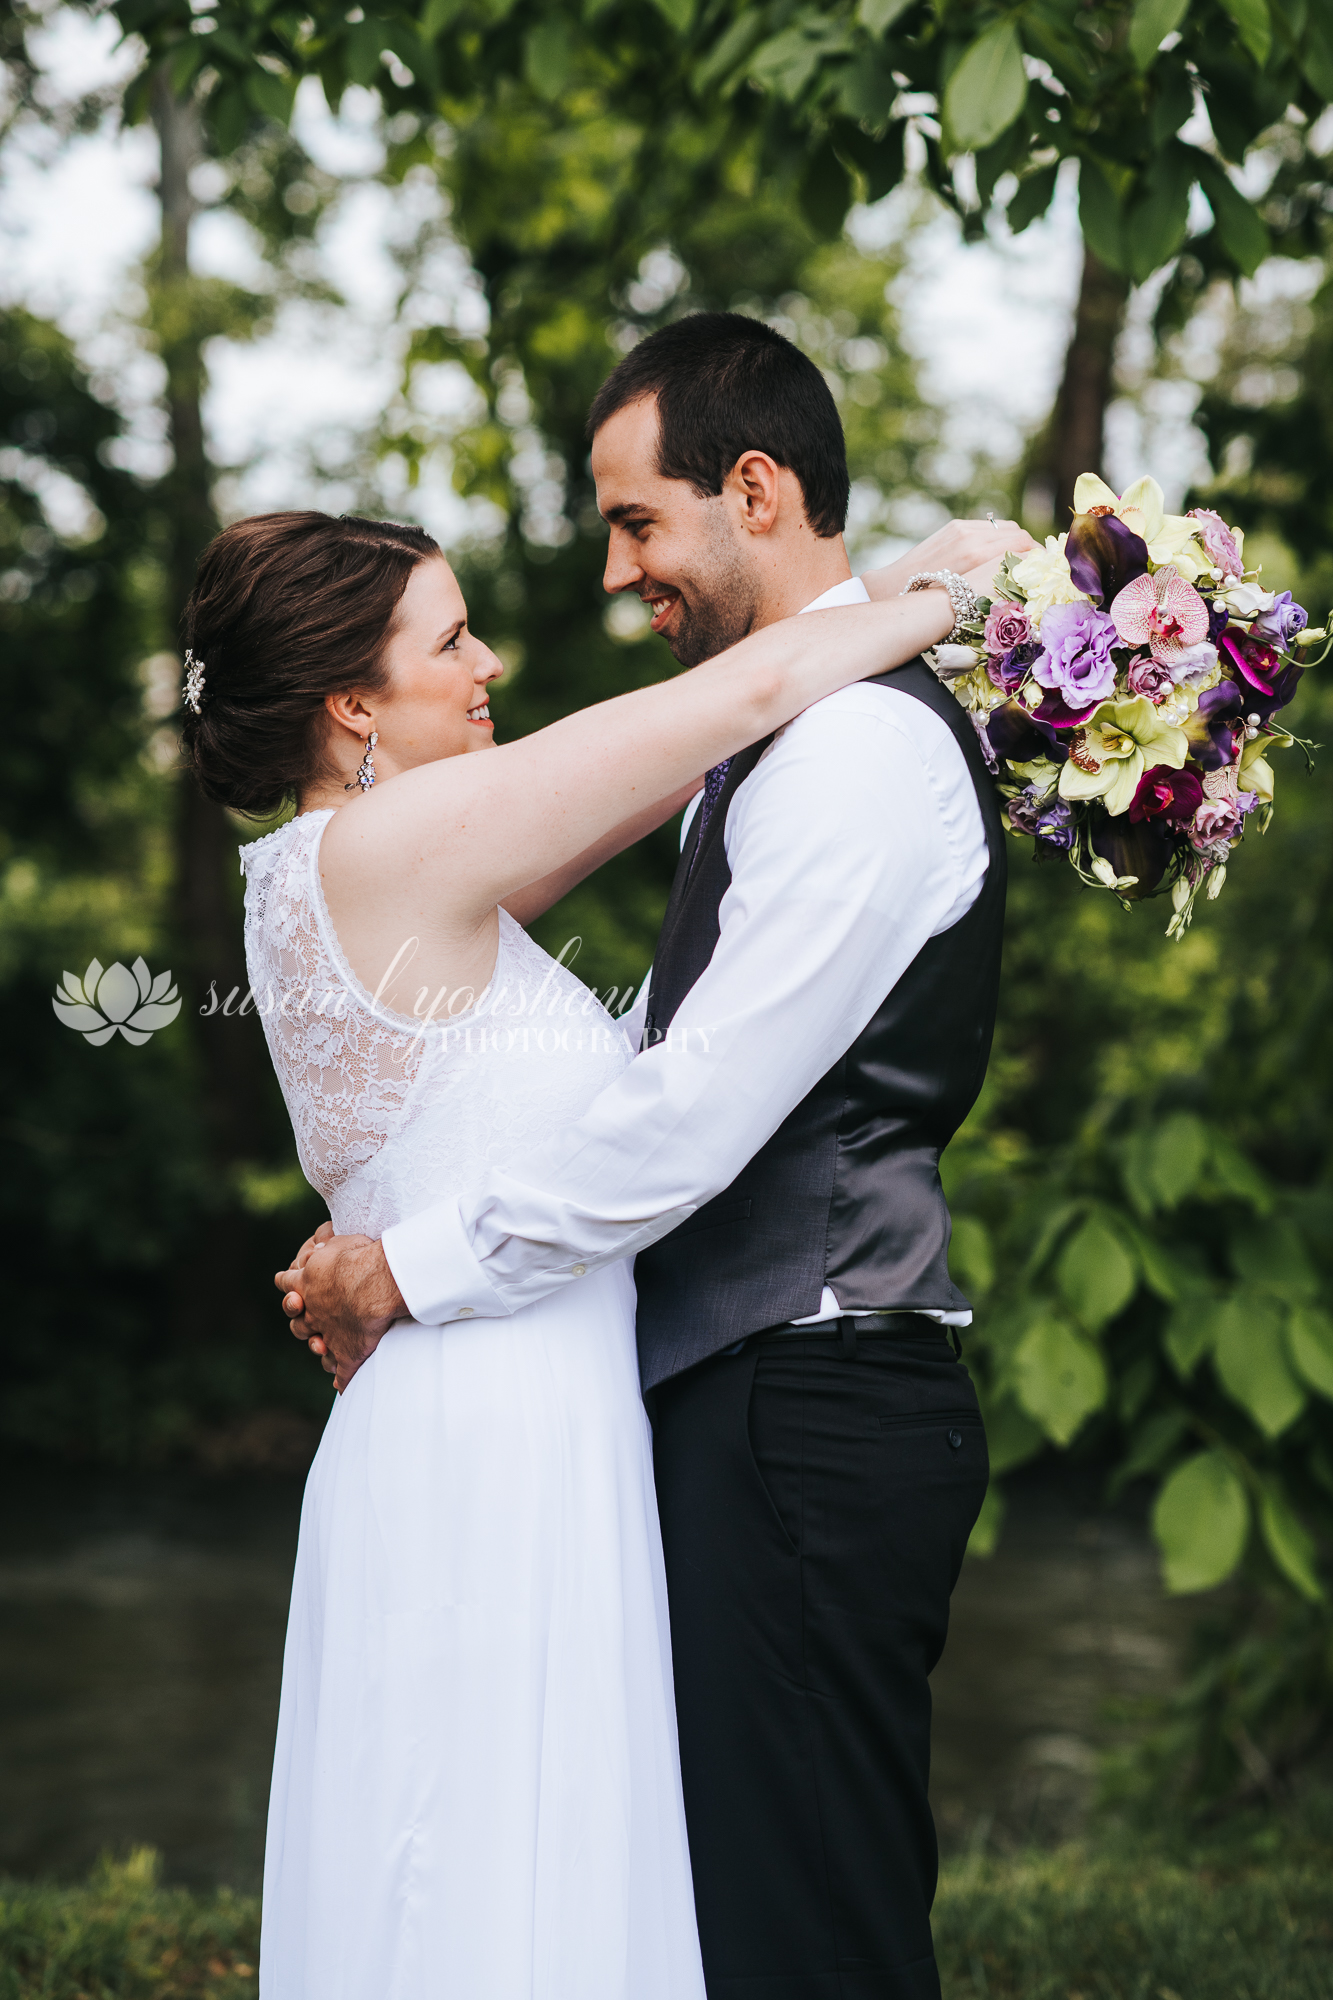 Adena and  Erik Wedding 05-17-2019 SLY Photography-37.jpg